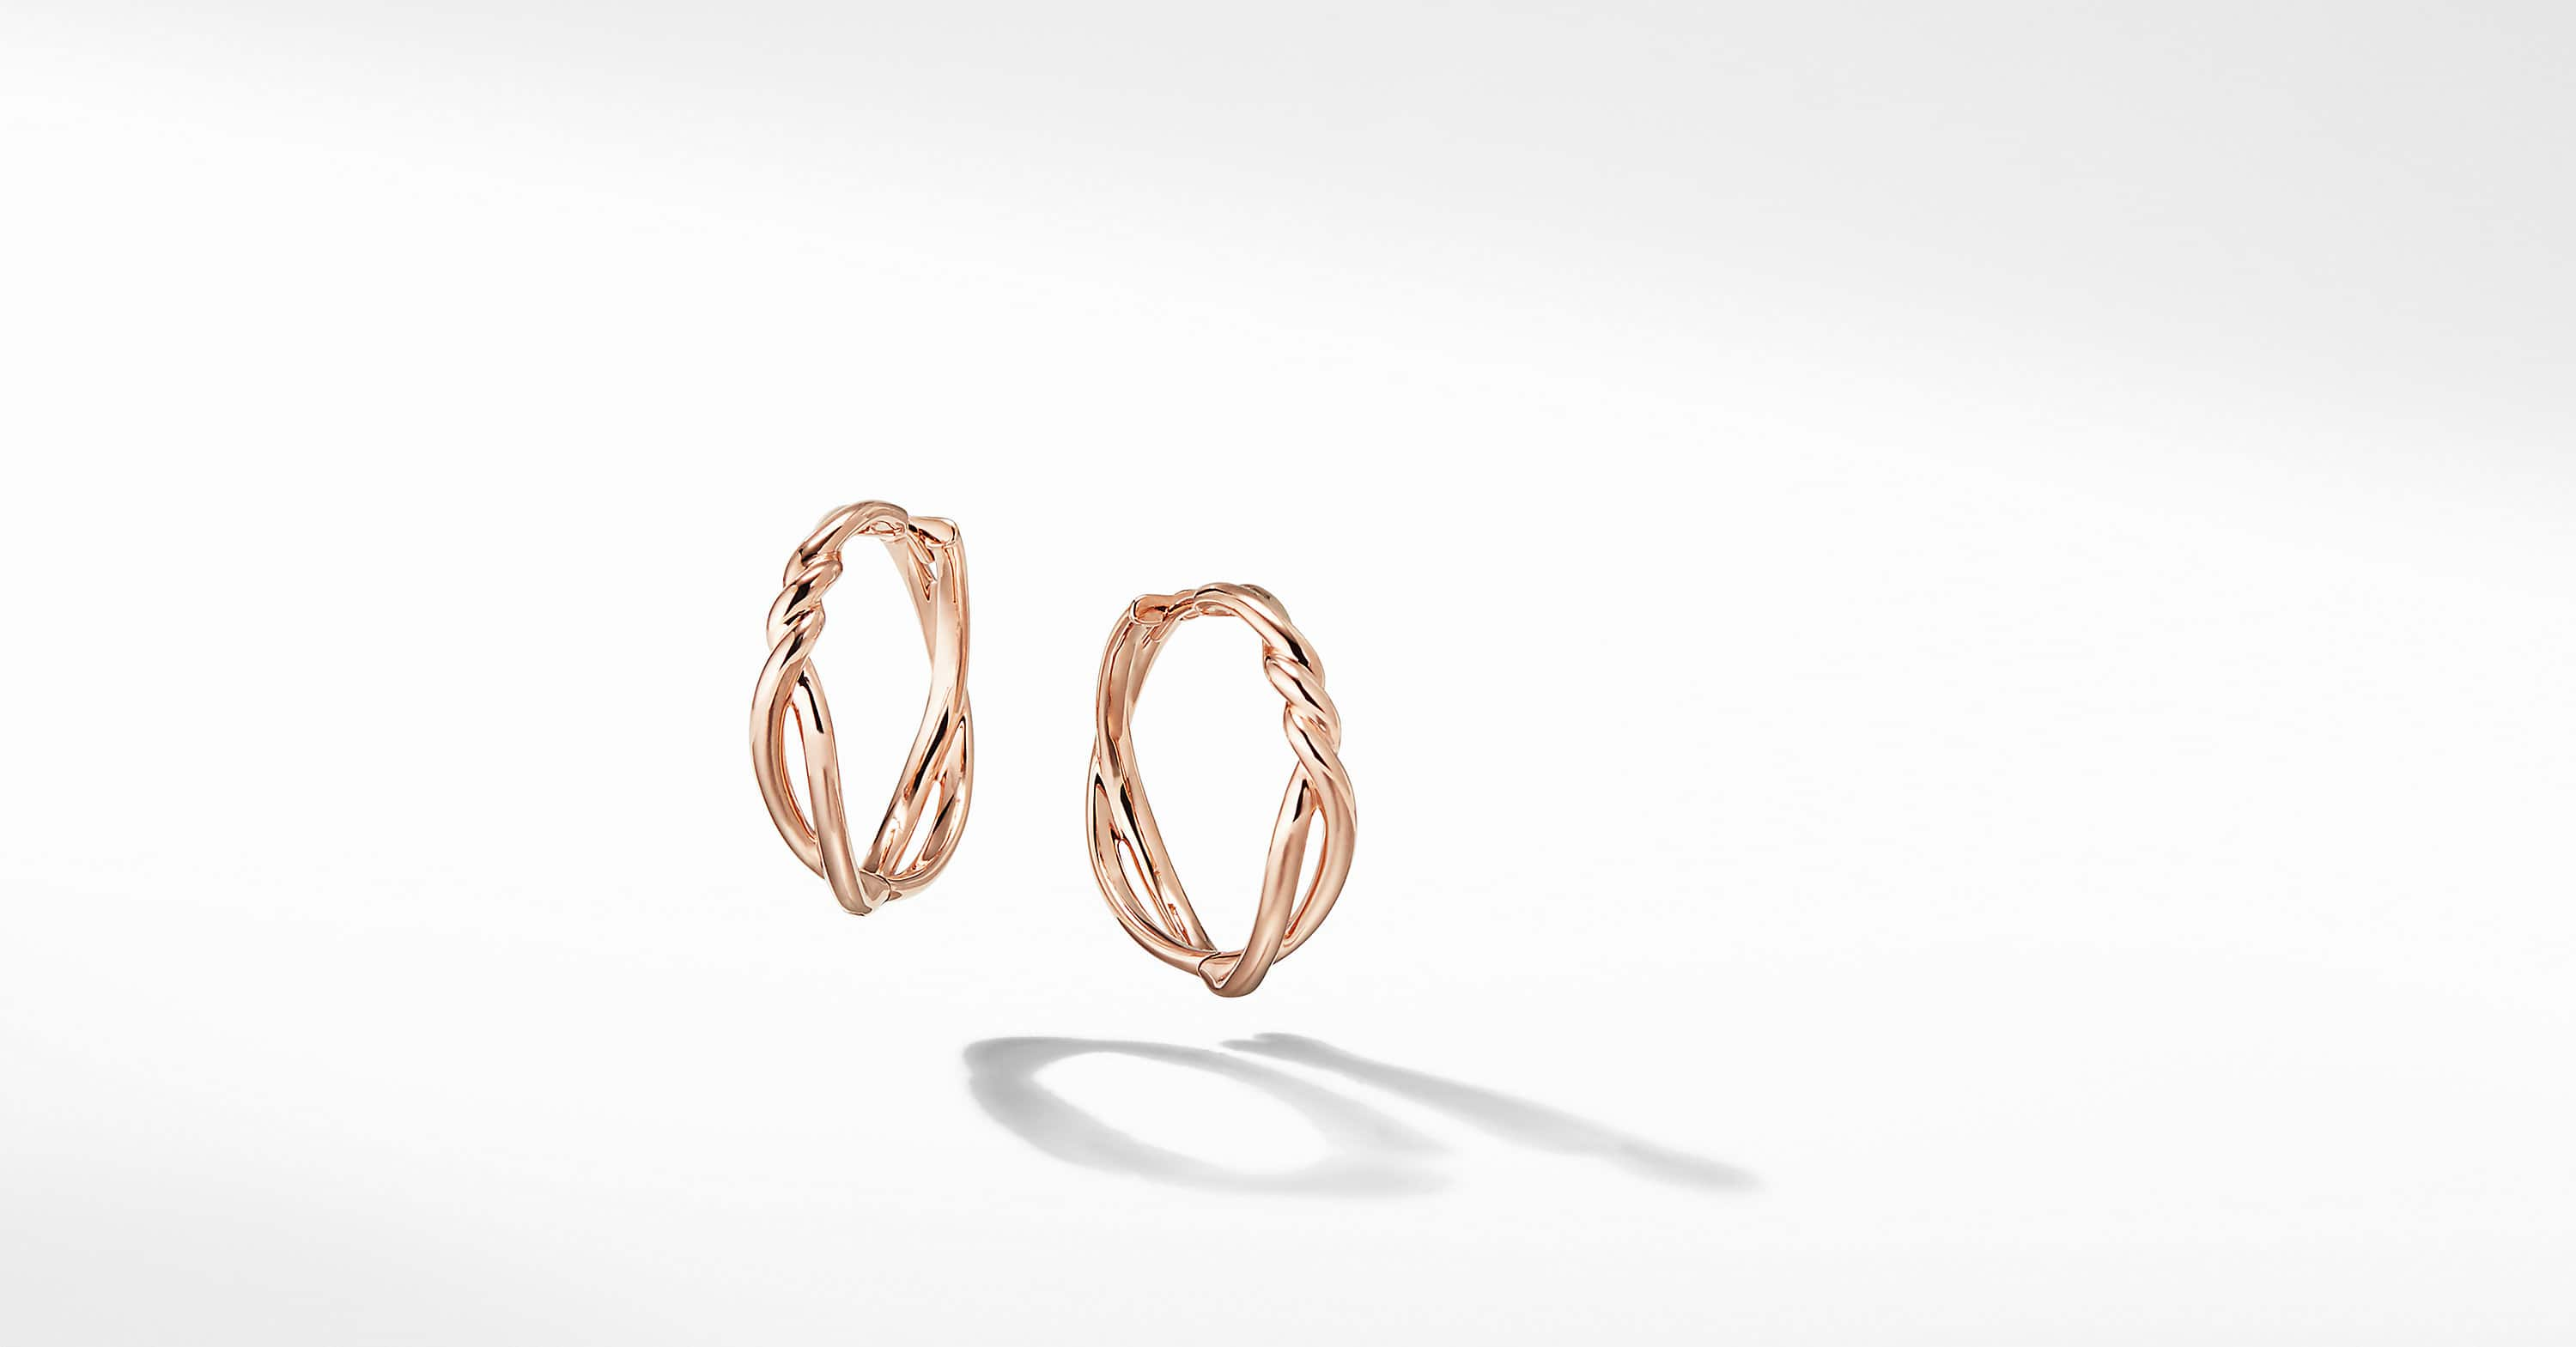 Continuance Hoop Earrings in 18K Rose Gold